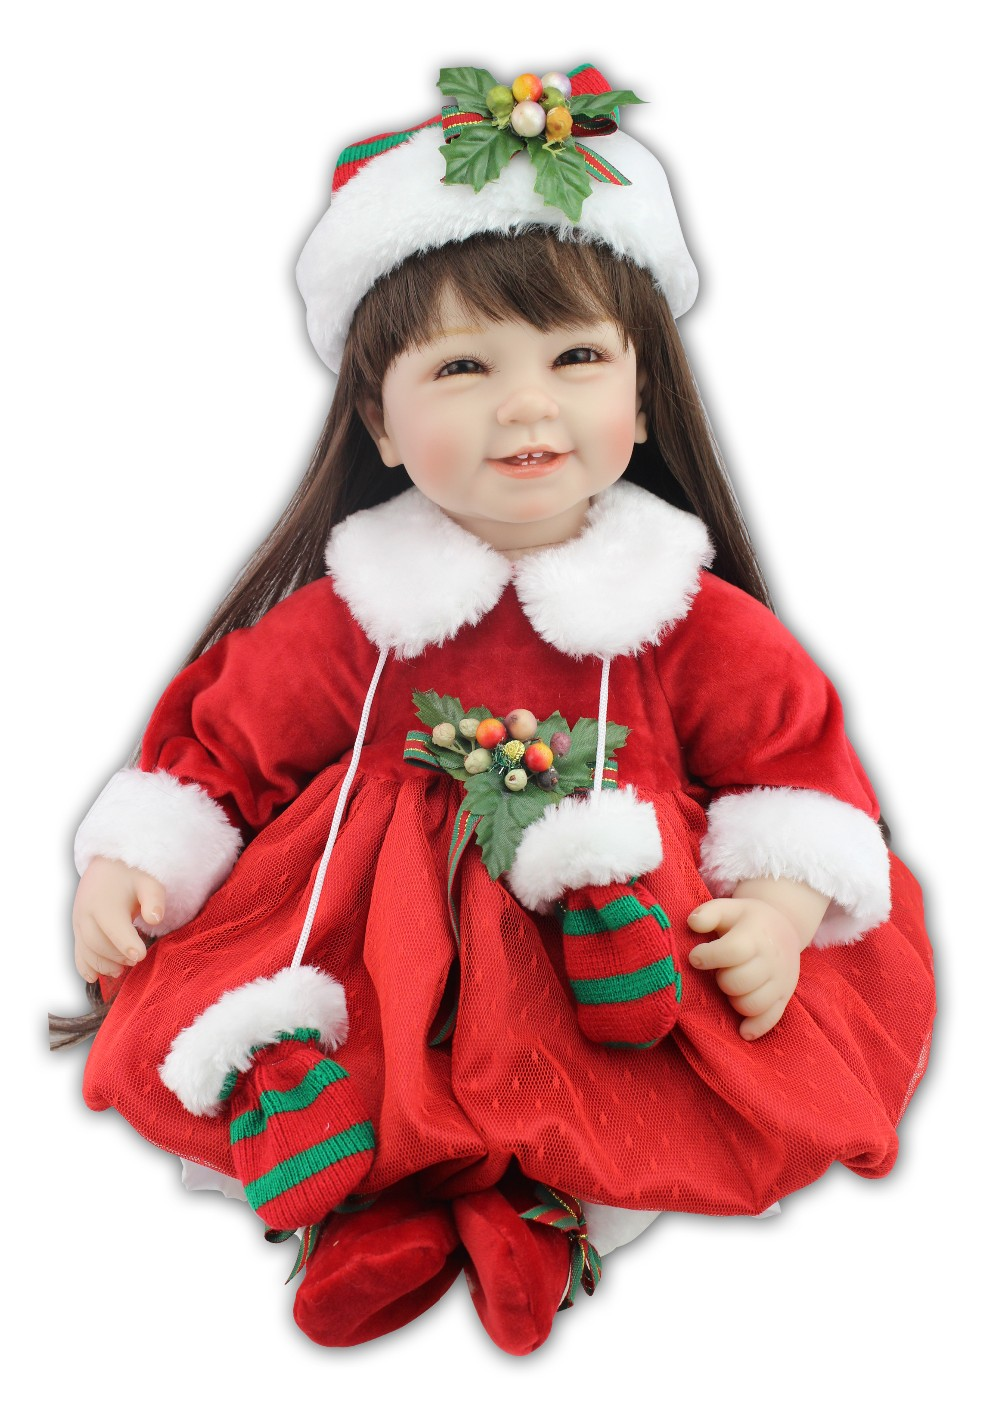 NPKCOLLECTION lifelike reborn toddler doll with Christmas hat and Red skirt fashion doll girl's gift 2017 NEW design hot sale new hot 17cm avengers thor action figure toys collection christmas gift doll with box j h a c g